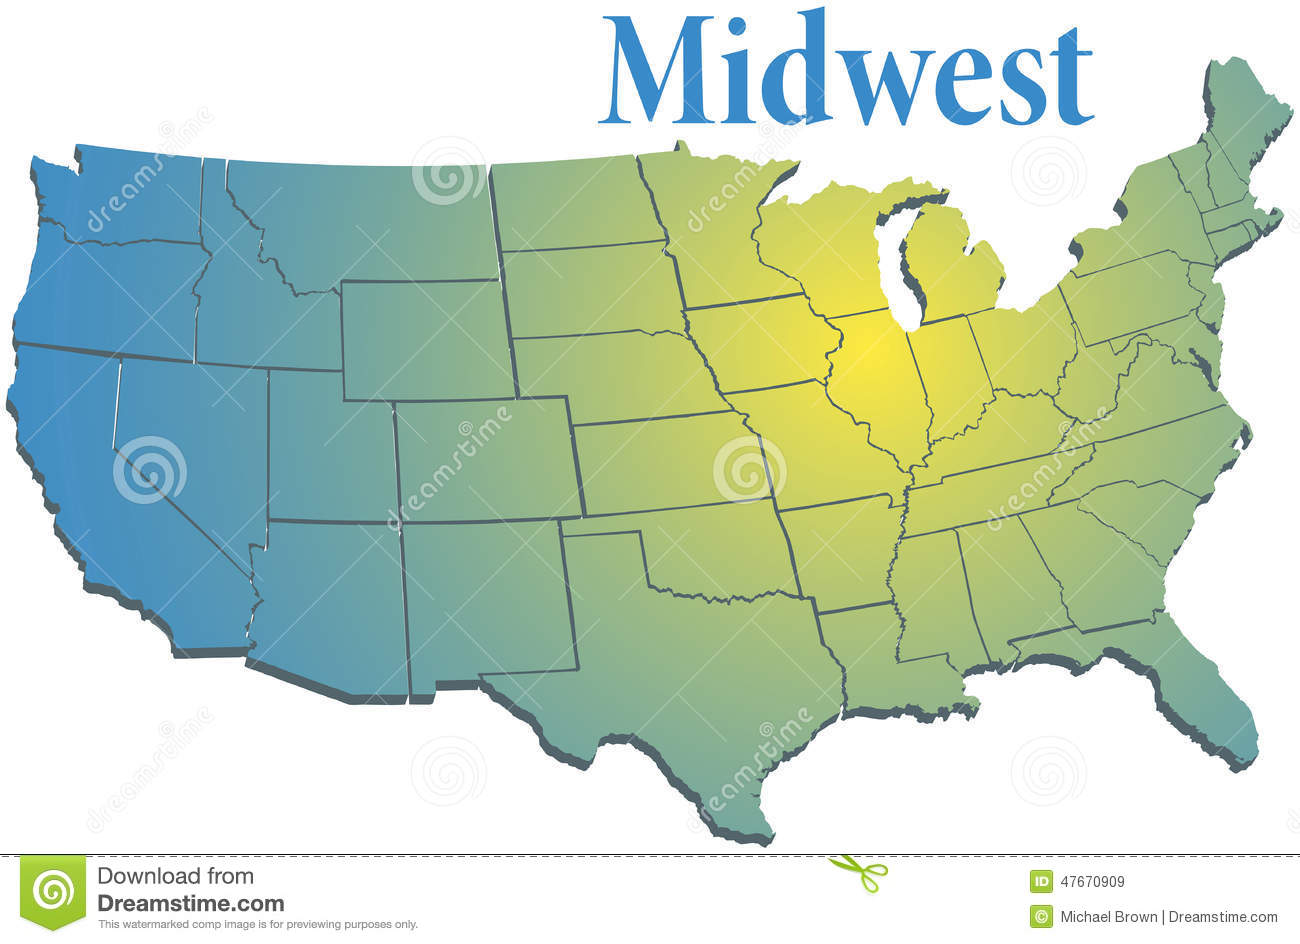 US States Regional MidWest Map Stock Vector Image - Us map midwest region